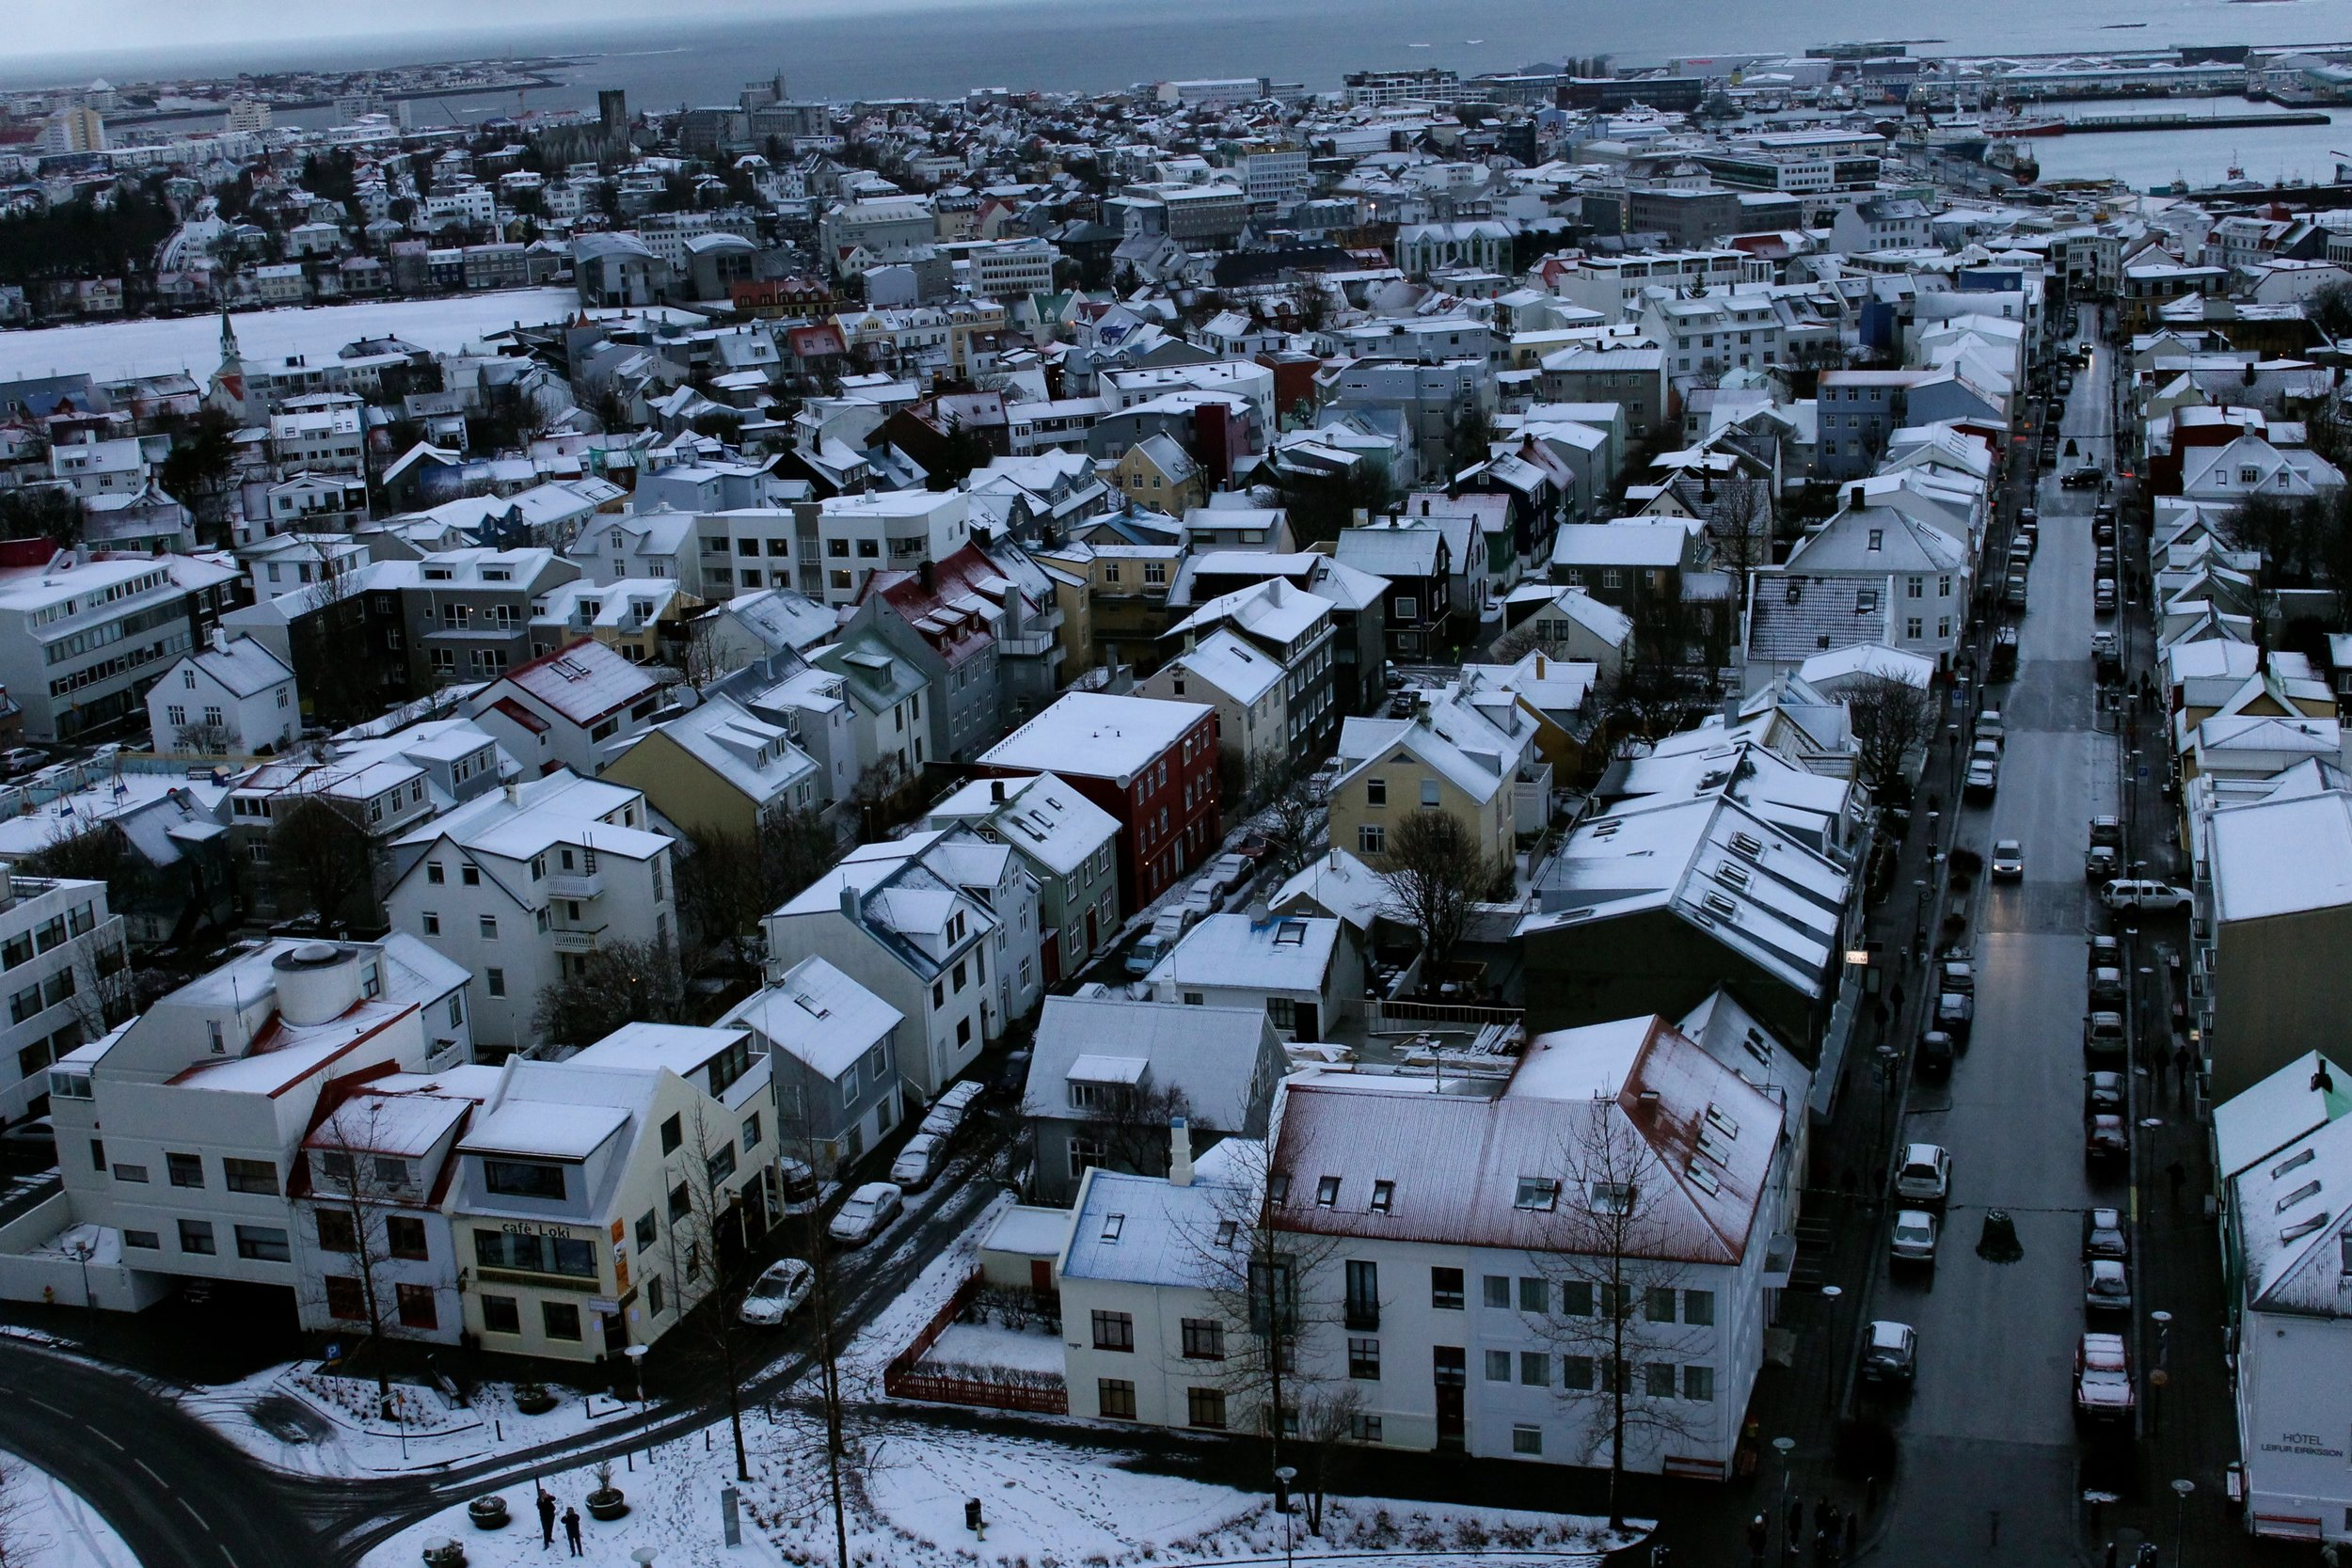 View from the top of  Hallgrímskirkja  church downtown.